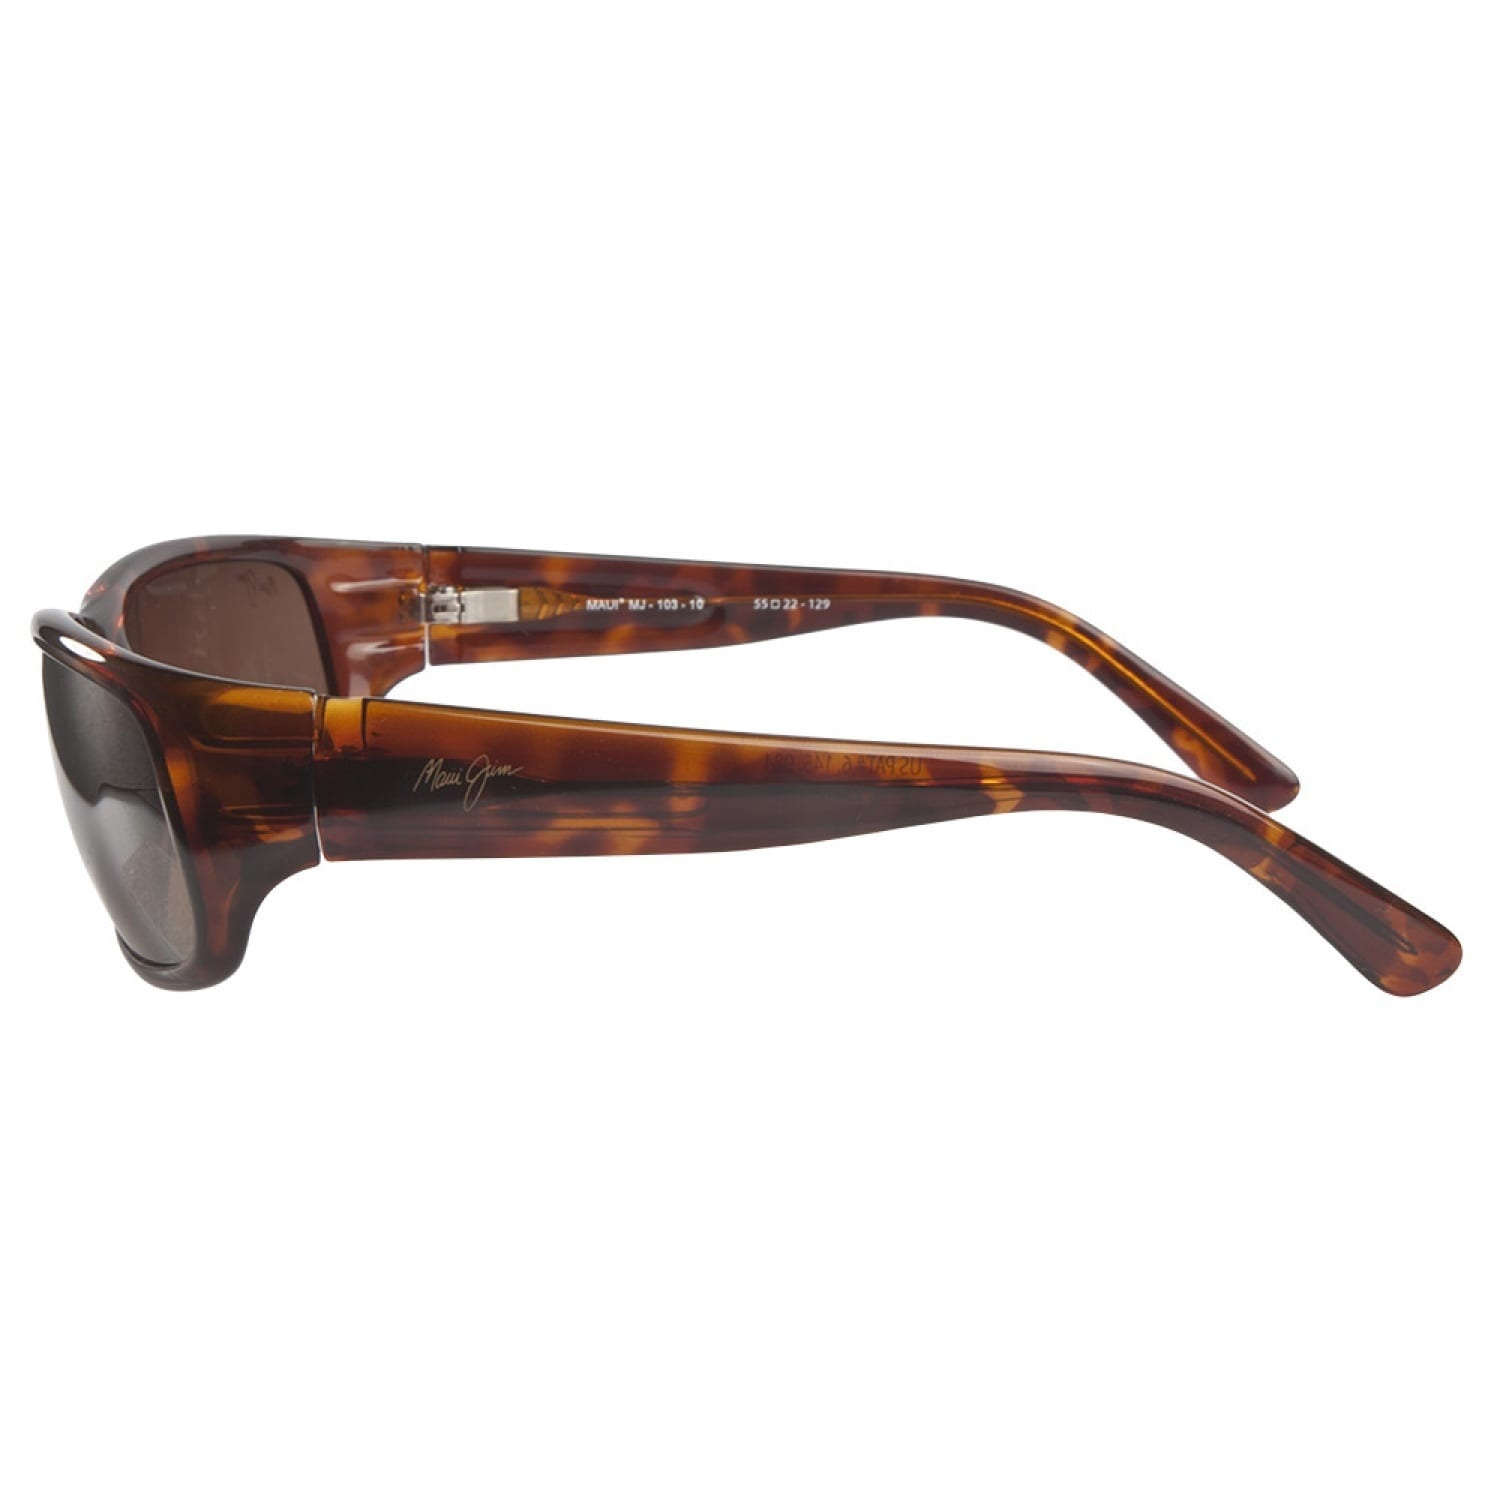 dbb0f7afea Shop Maui Jim Stingray Tortoise HCL Bronze Polarized H103-10 Sunglasses -  Free Shipping Today - Overstock.com - 8628079